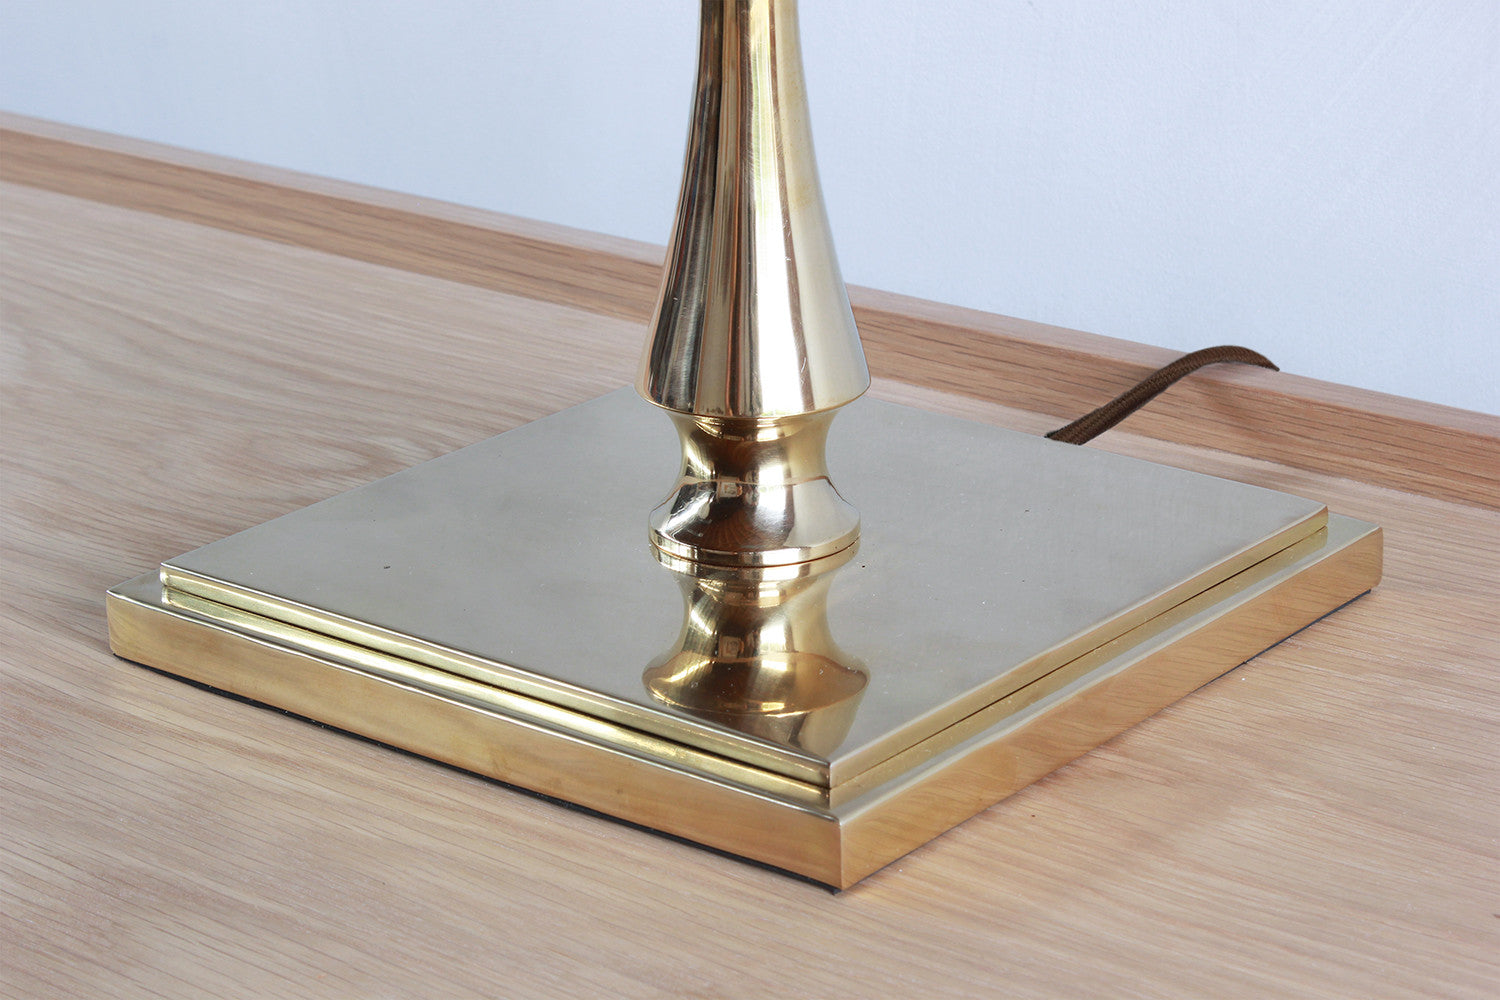 Nickey Kehoe Turned Brass Table Lamp Nickeykehoe